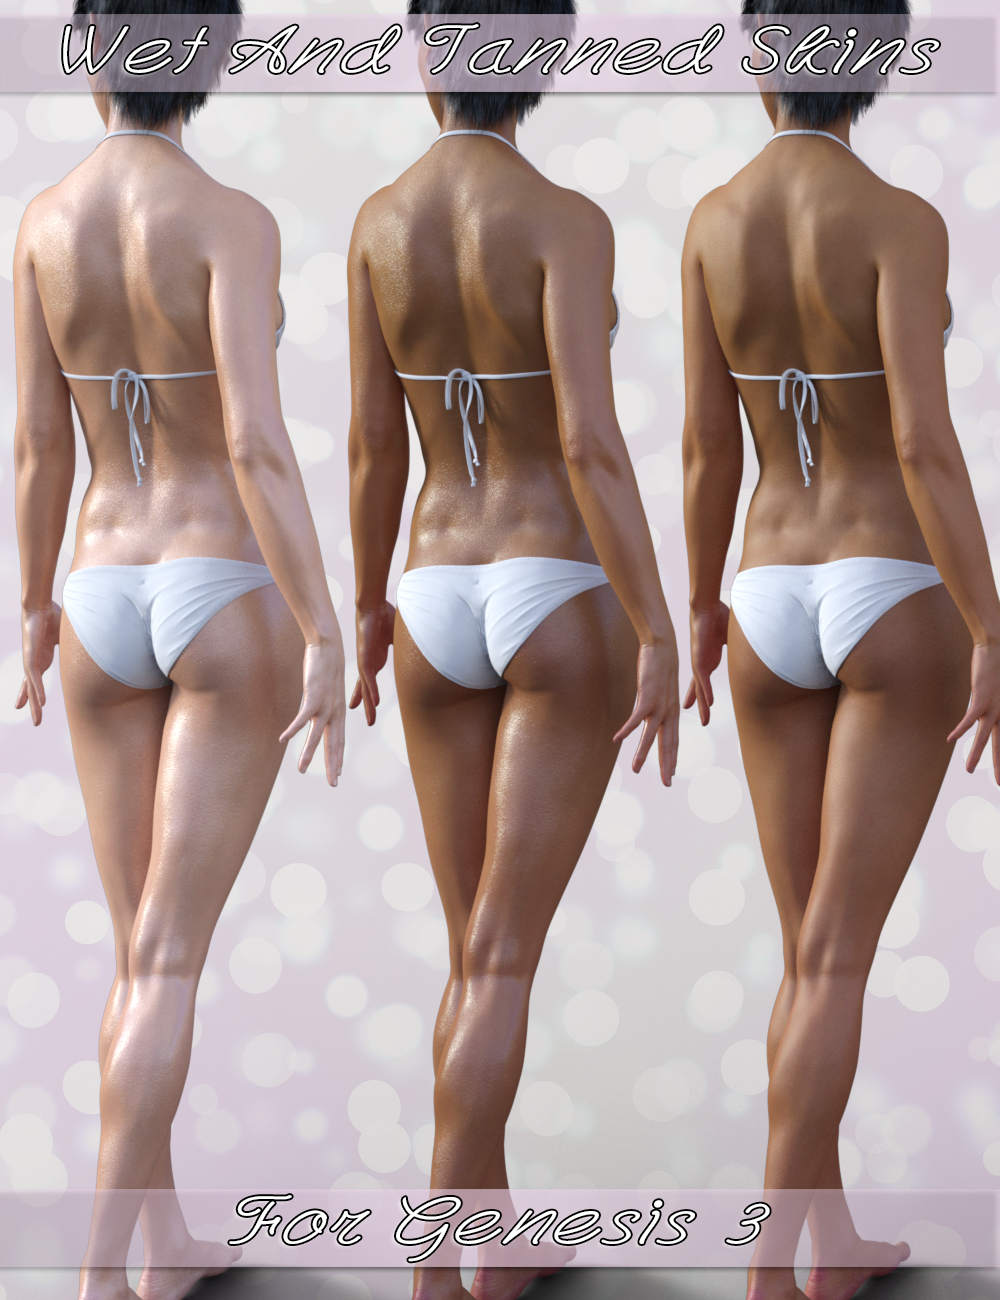 Wet and Tanned Skins for Genesis 3 by: V3Digitimes, 3D Models by Daz 3D